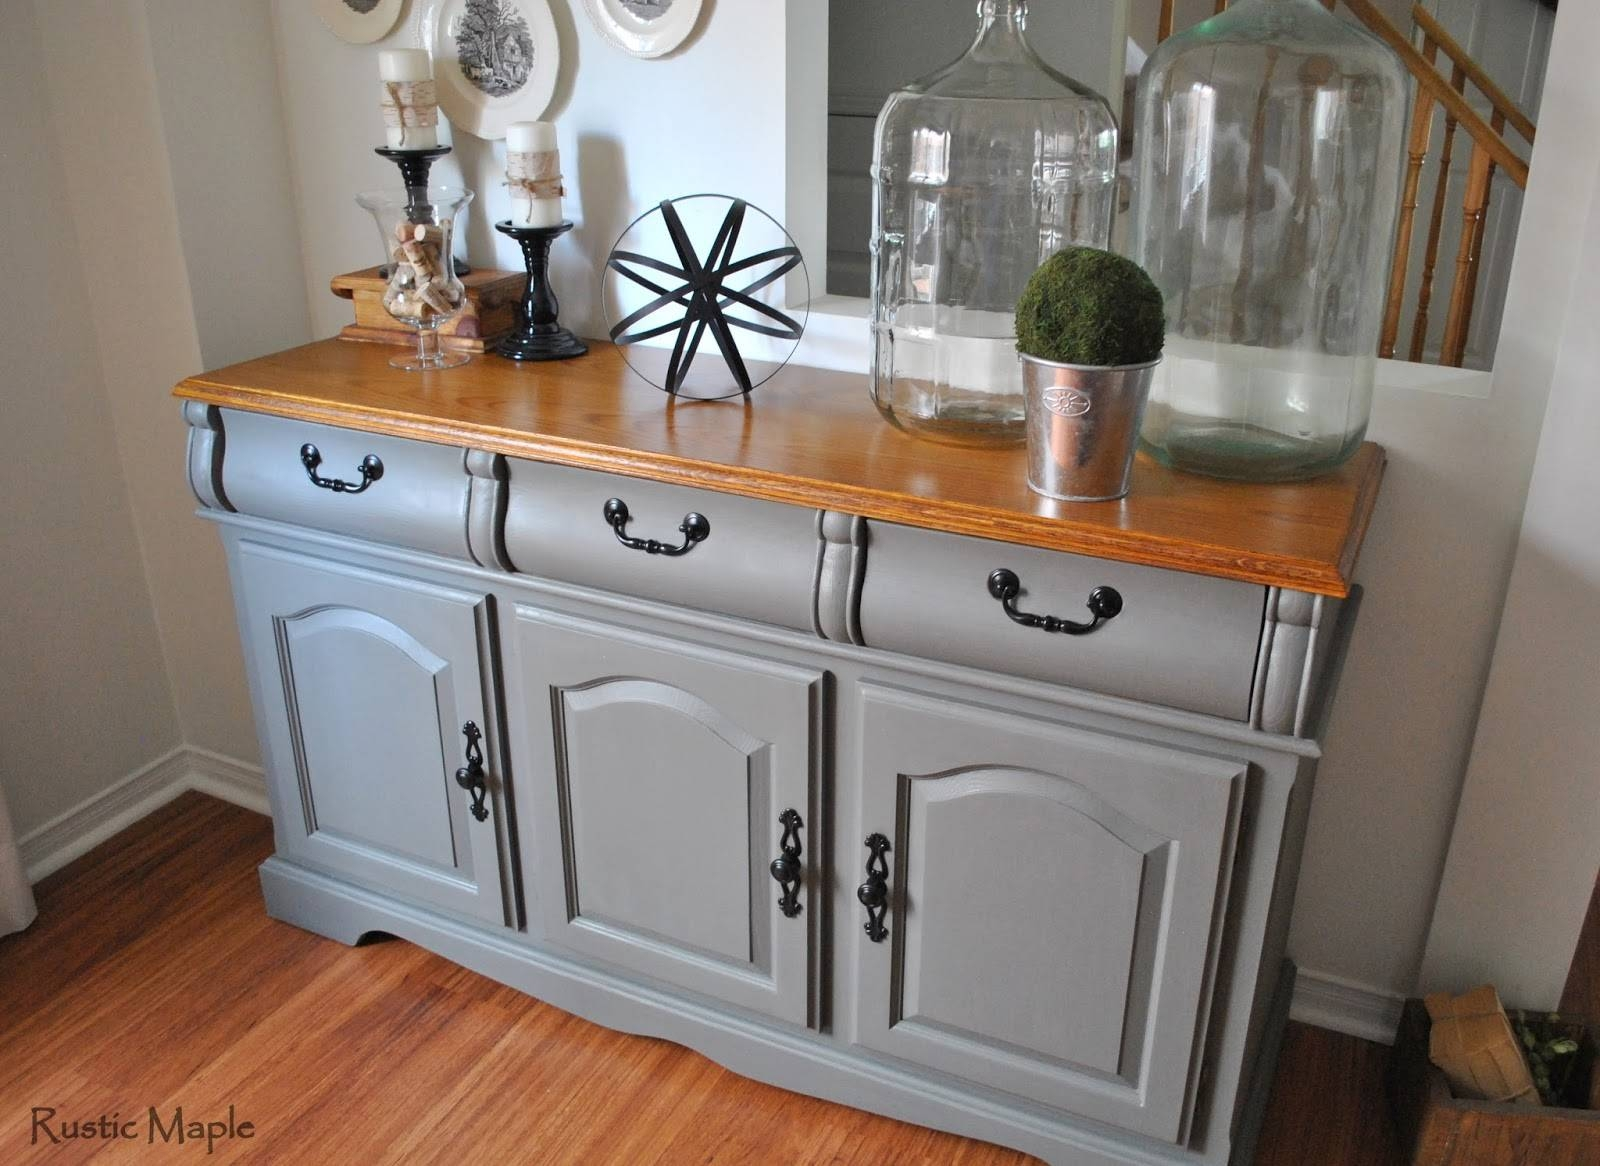 Rustic Maple: Painted Buffet In Country Chic Paint's Cobblestone Within Grey Painted Sideboards (#13 of 15)